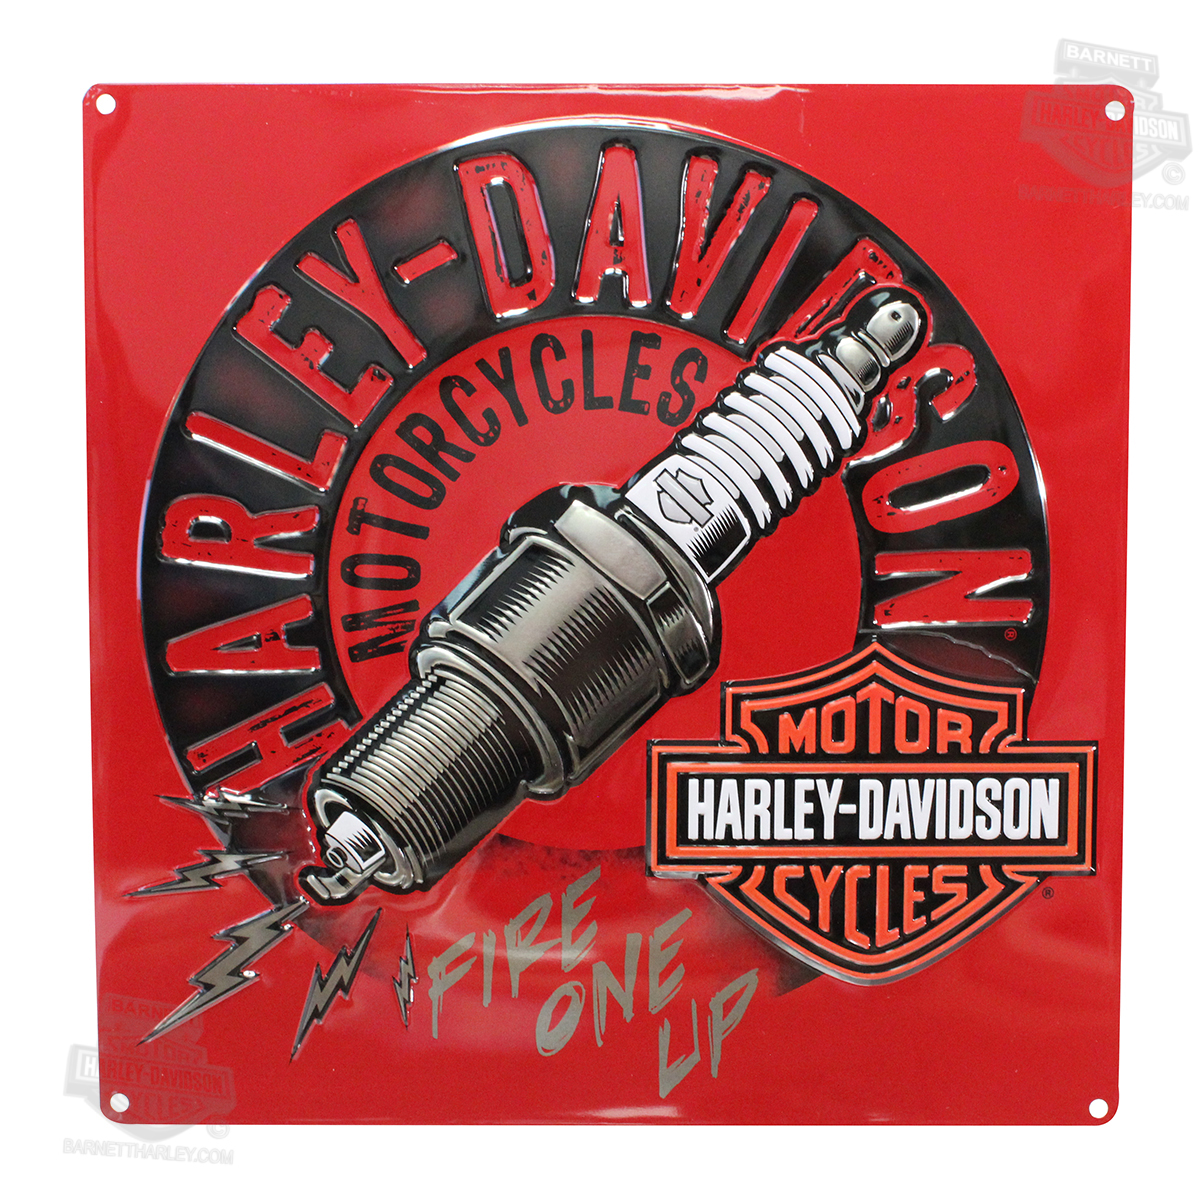 Harley Davidson Wall Decor barnett harley-davidson wall decor metal signs